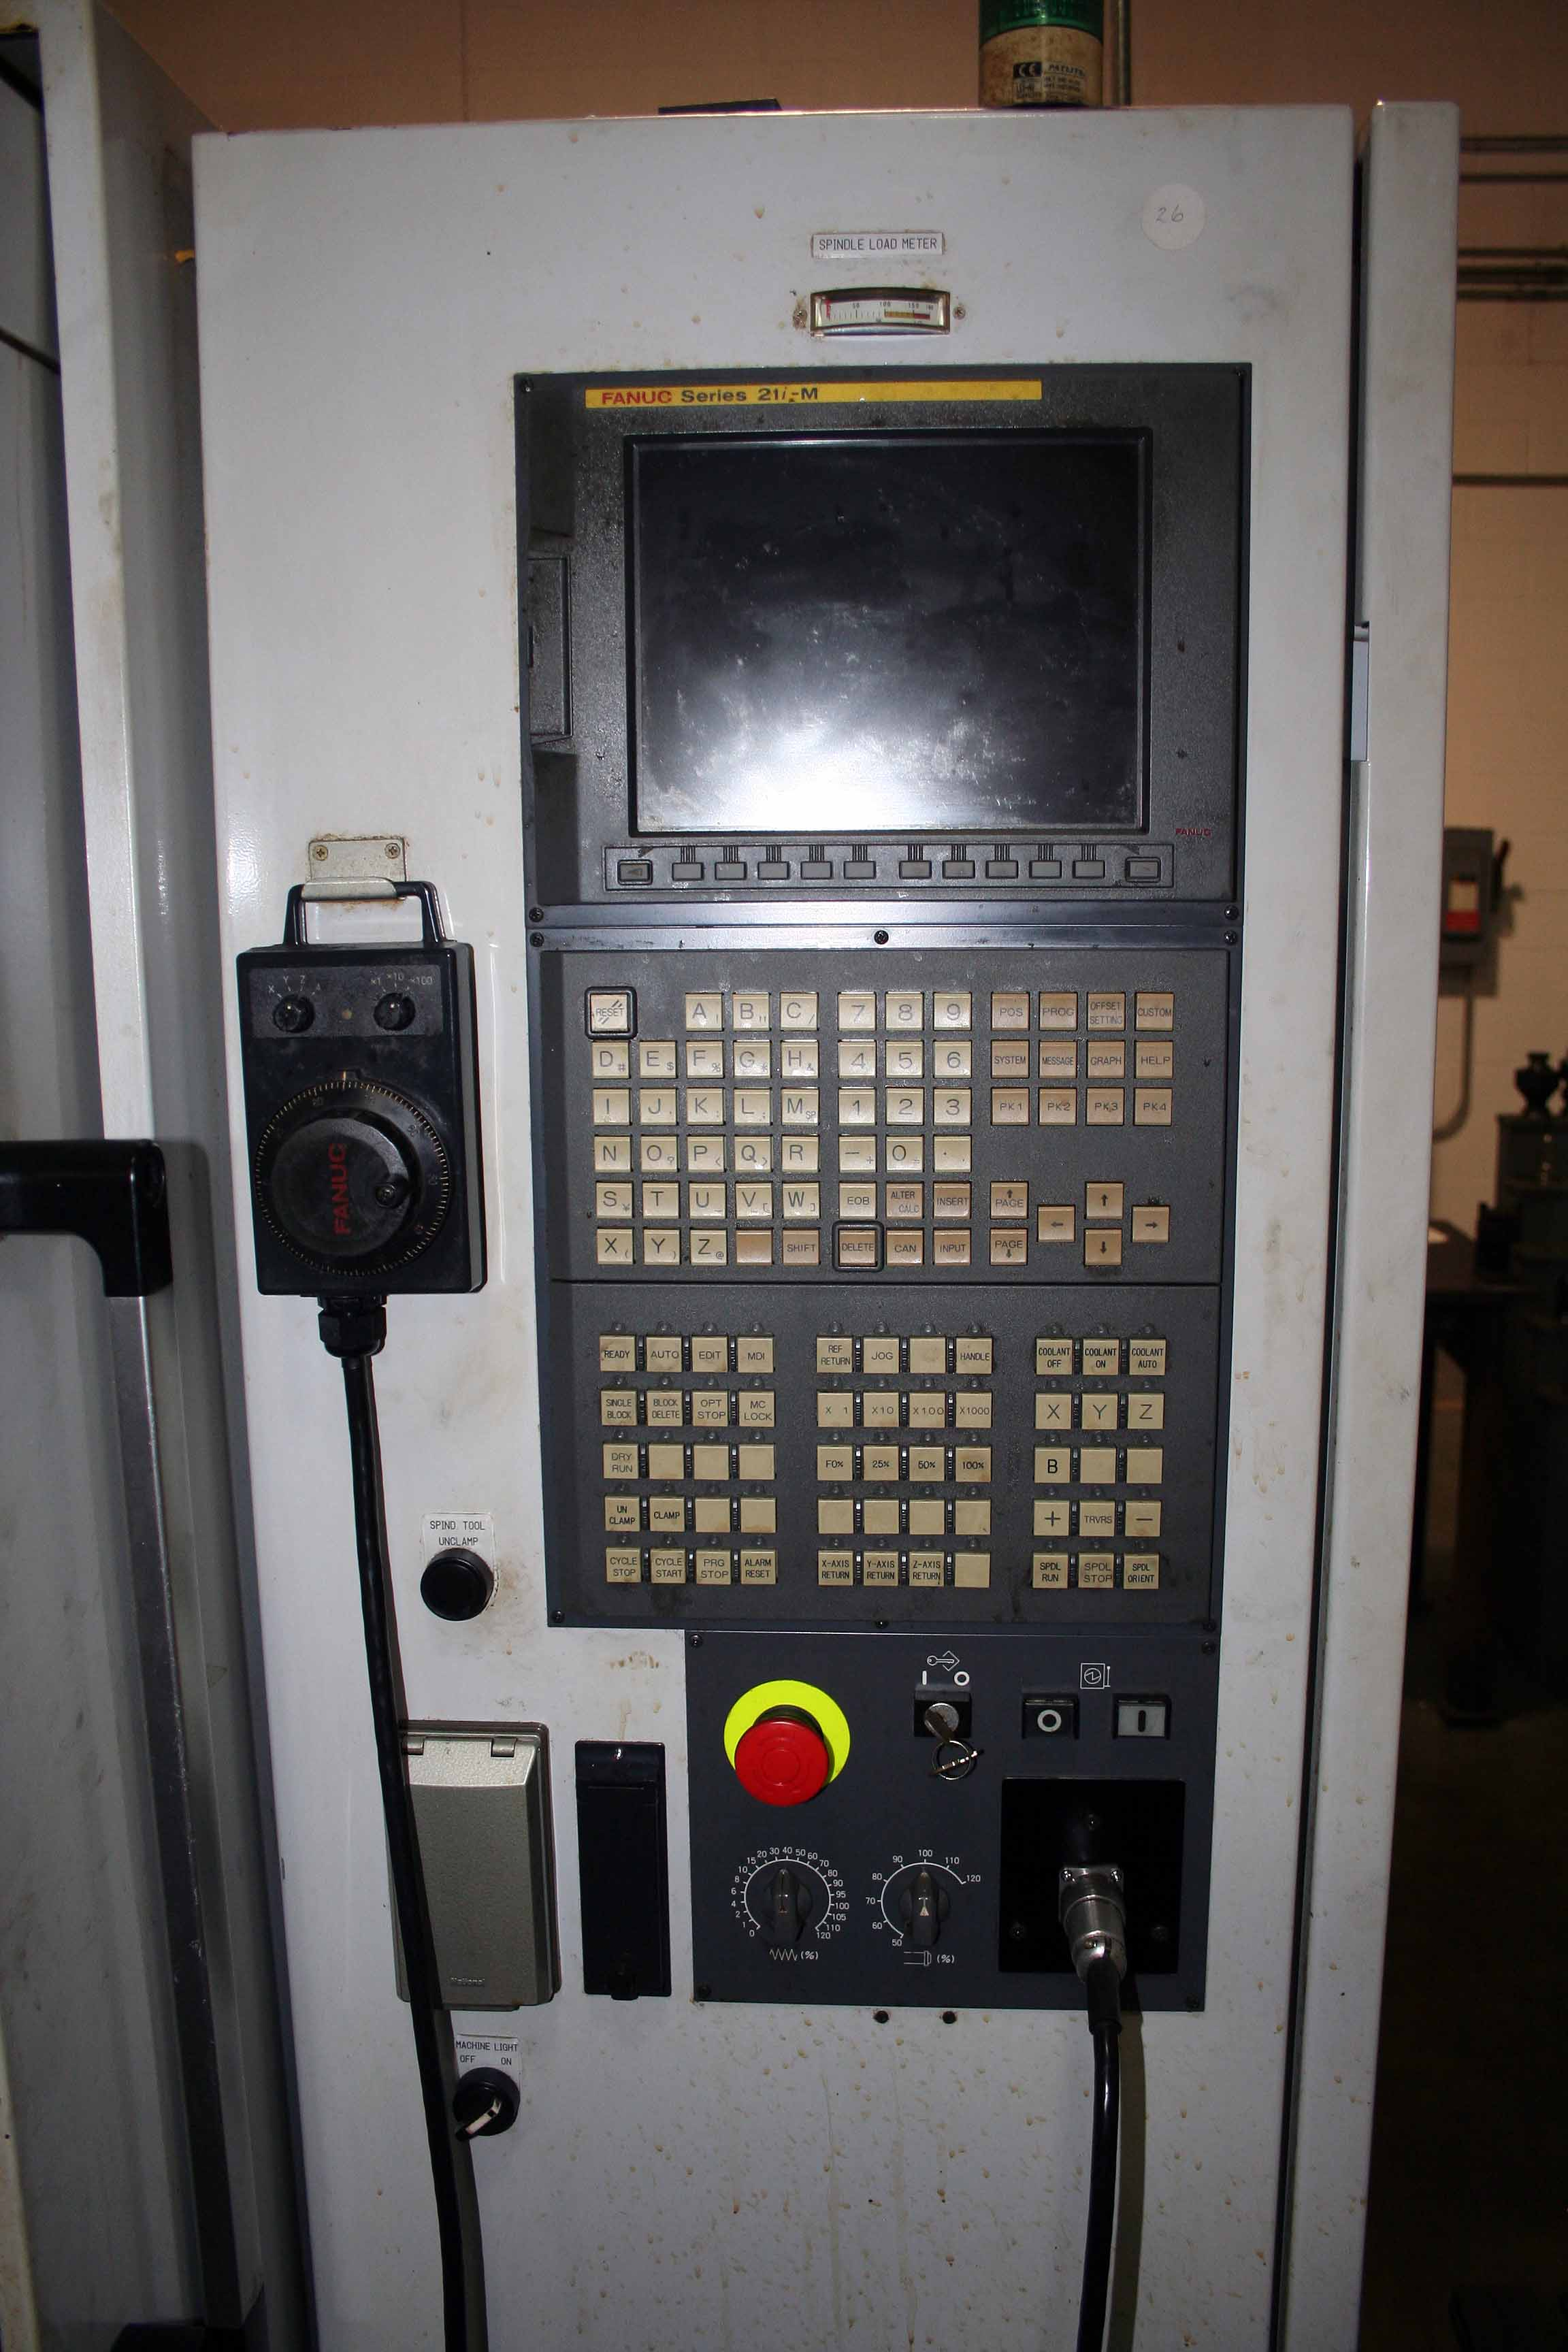 Lot 4 - CNC HORIZONTAL MACHINING CENTER/GUN DRILL, YAMASHINA SEIKI MDL. MAX40-H, new 2002, Fanuc 21i-M CNC